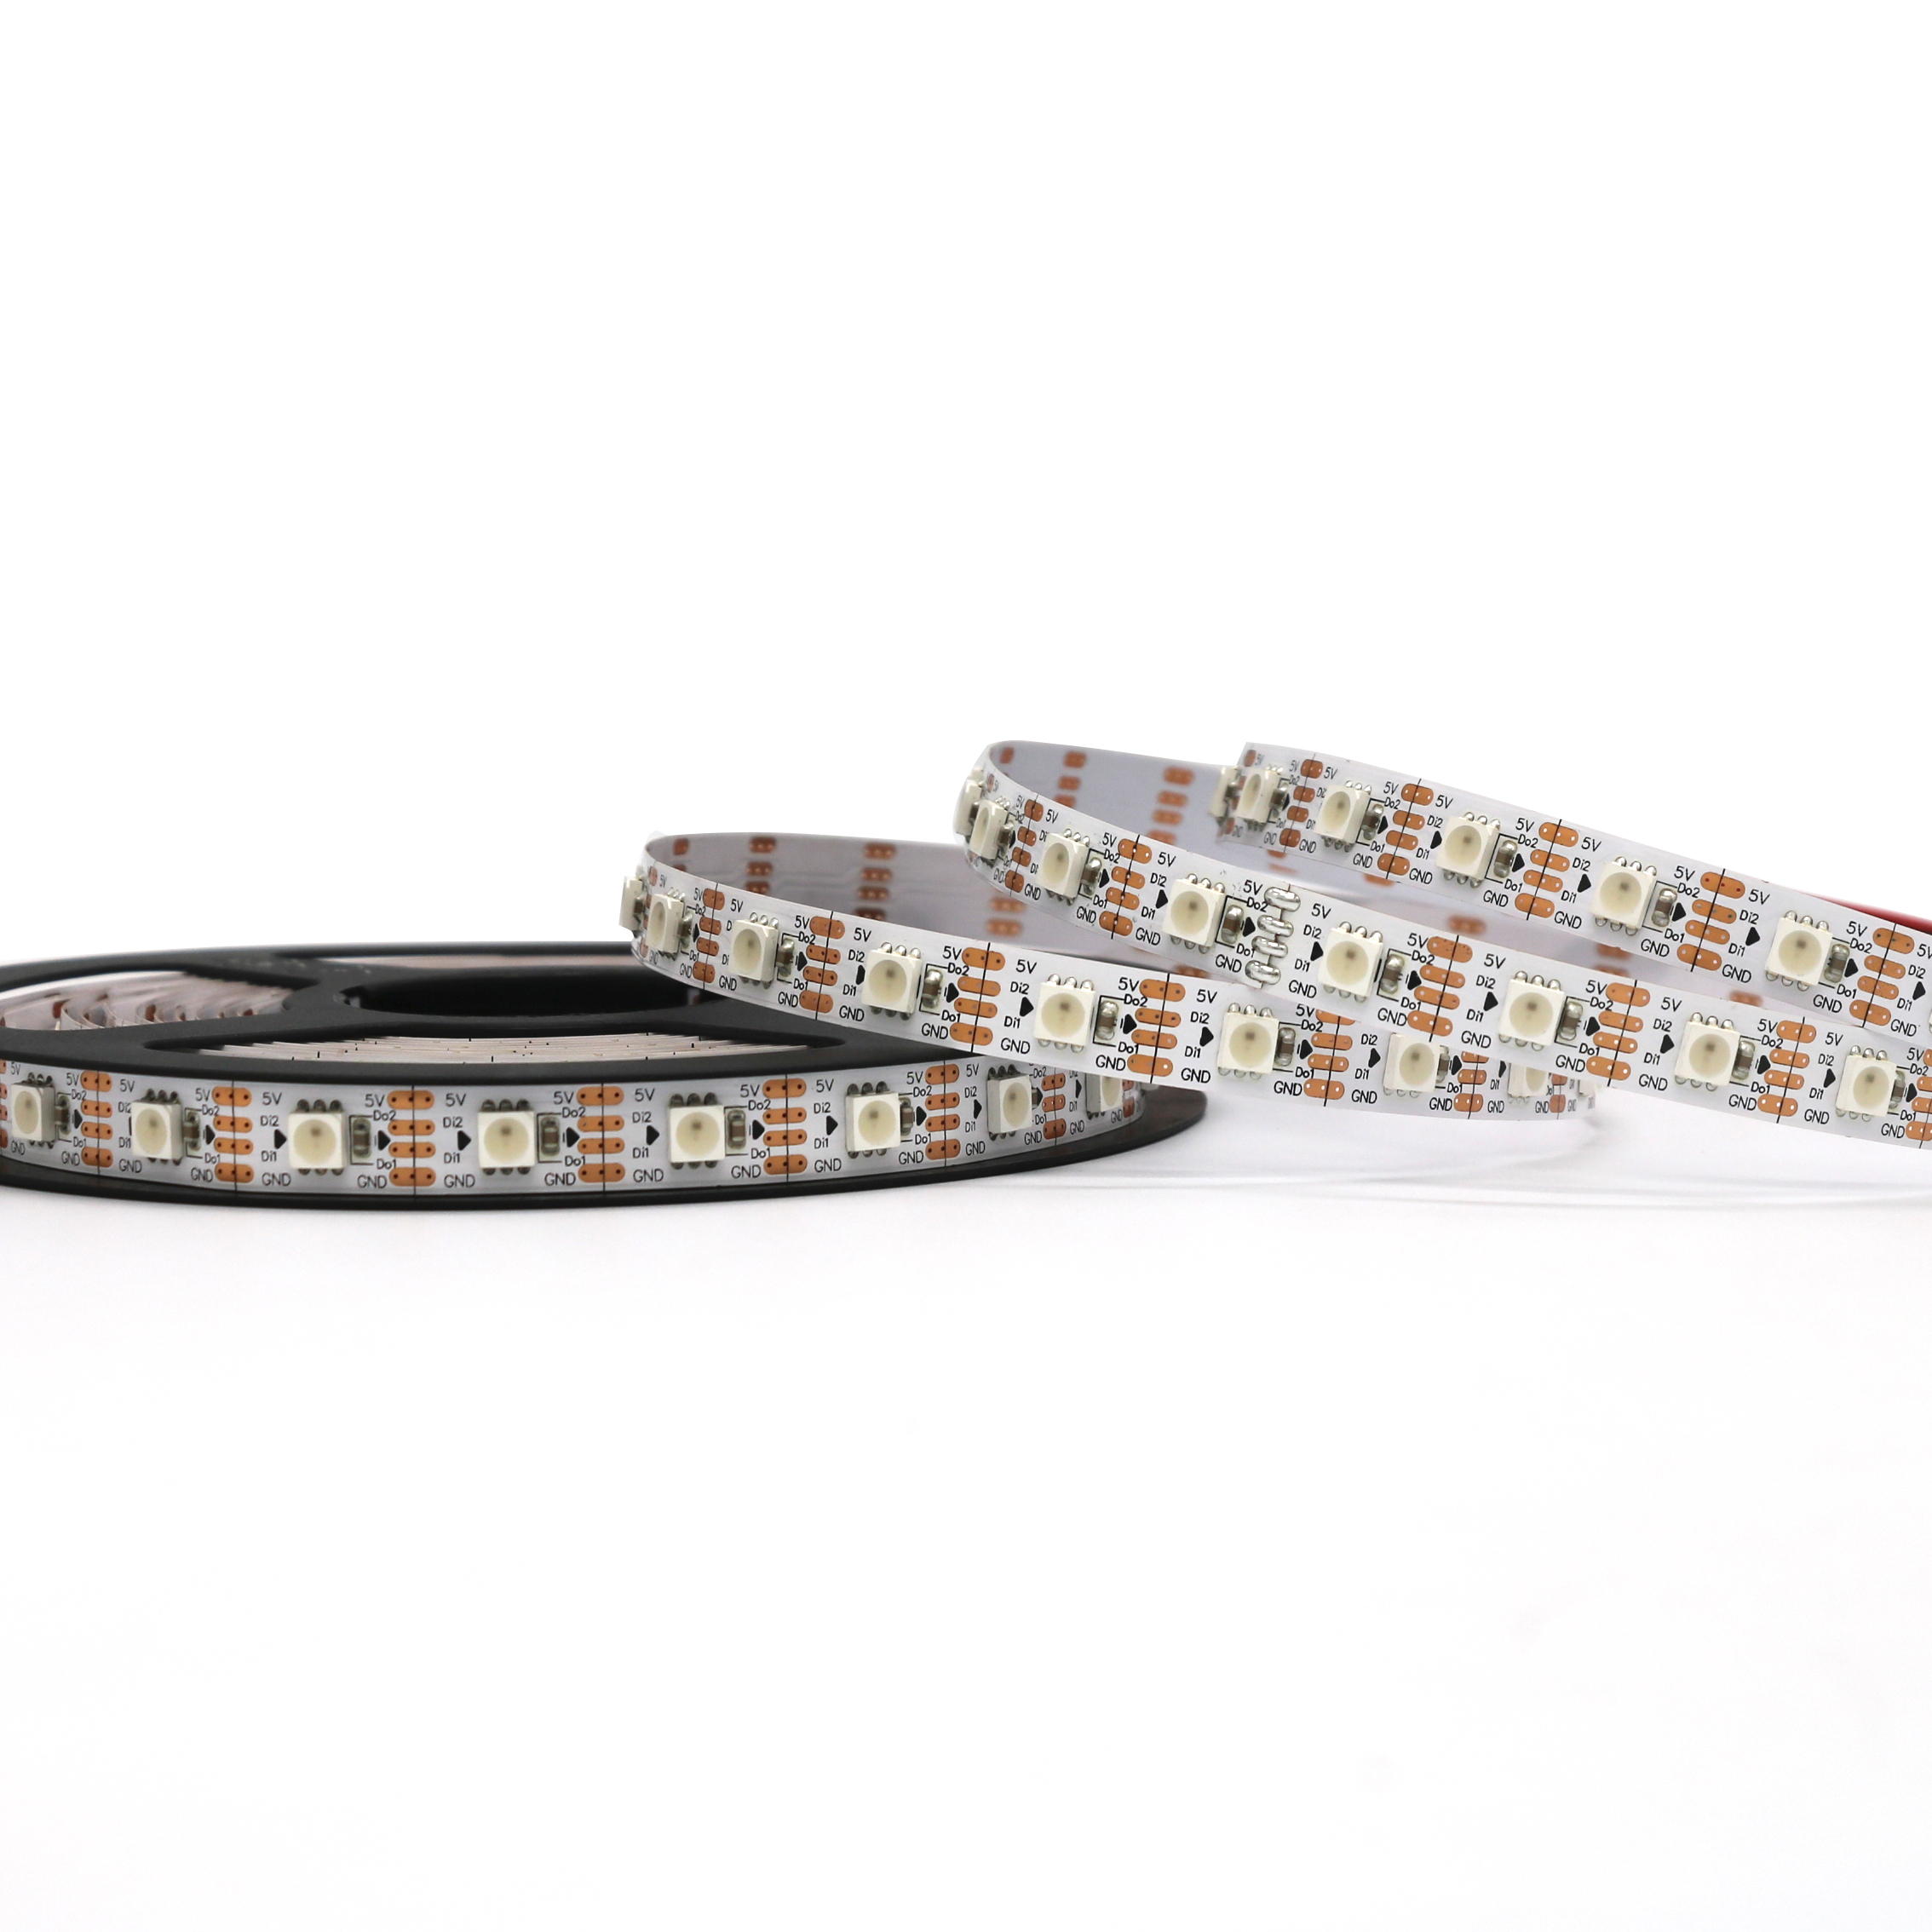 2019 new product high brightness WS2813 <strong>rgb</strong> 5050 pixel led tape light strip